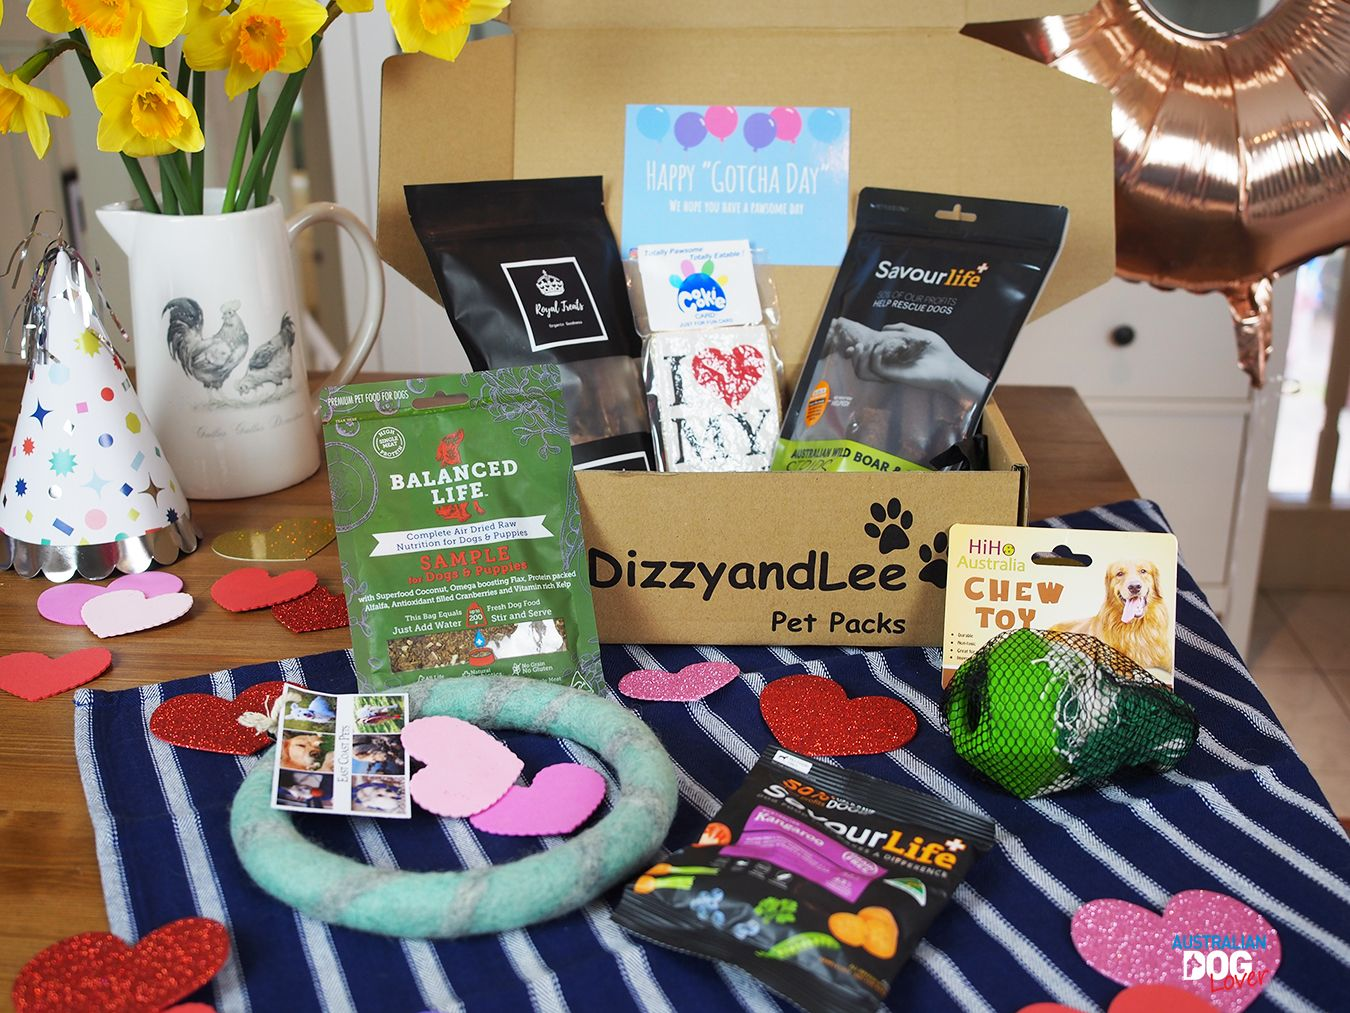 Dizzyandlee Dog Subscription Box Review Australian Dog Lover With Images Dog Box Subscription Subscription Box Review Subscription Boxes